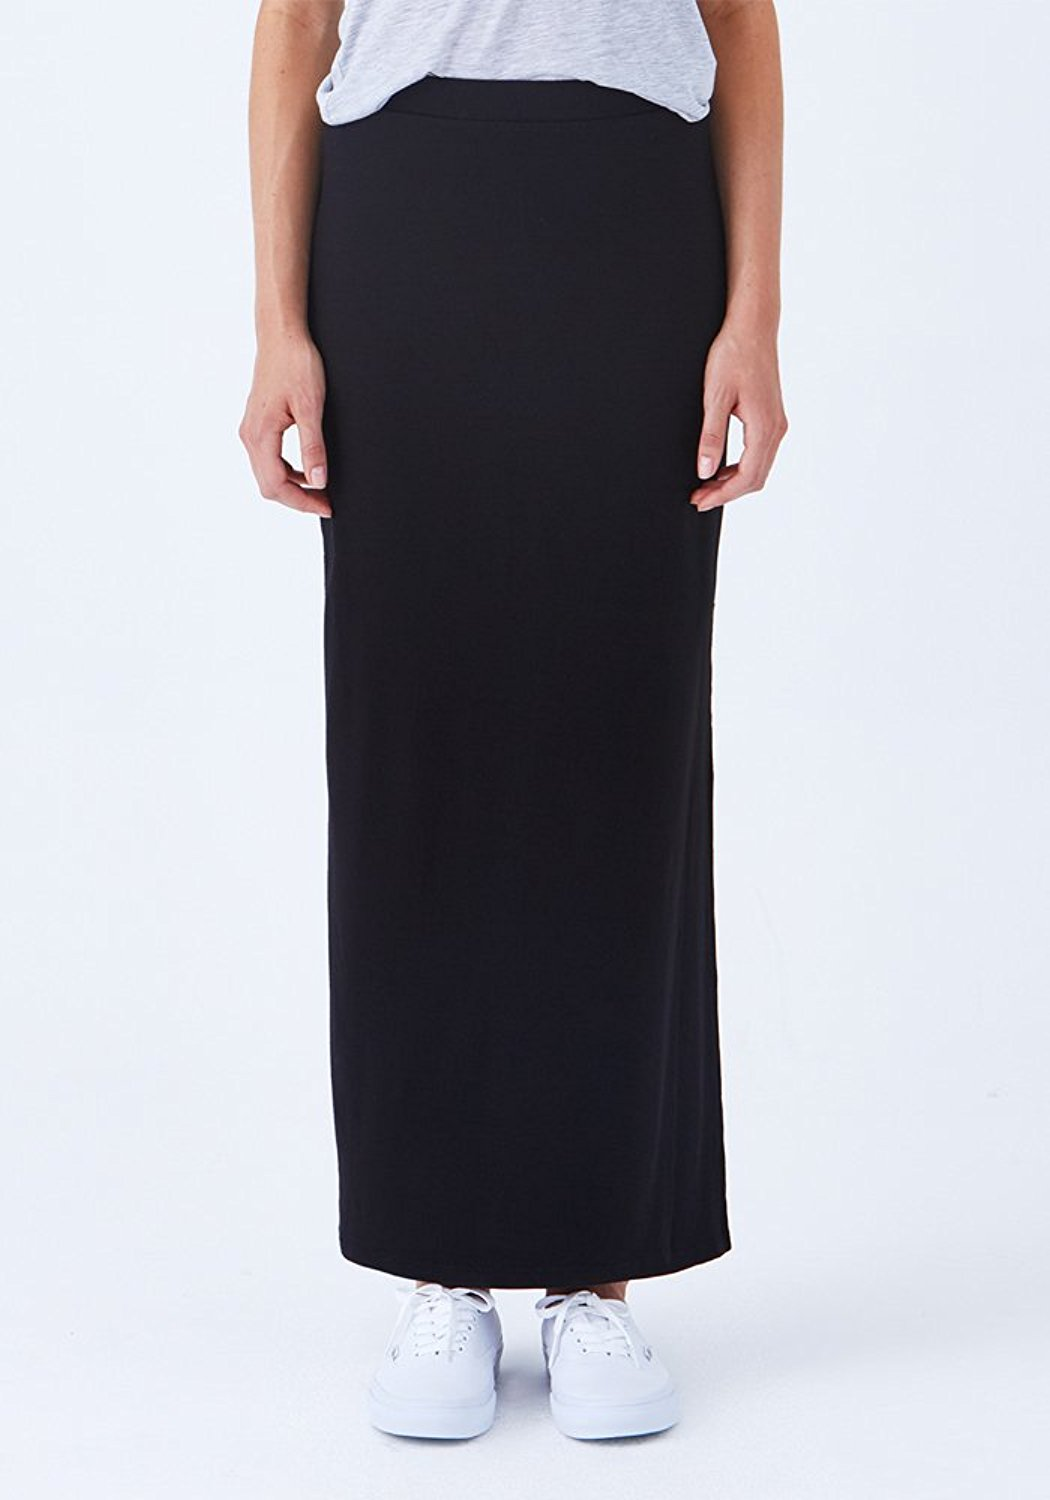 ffcc31690 Cheap Black Maxi Skirt With Slit, find Black Maxi Skirt With Slit ...